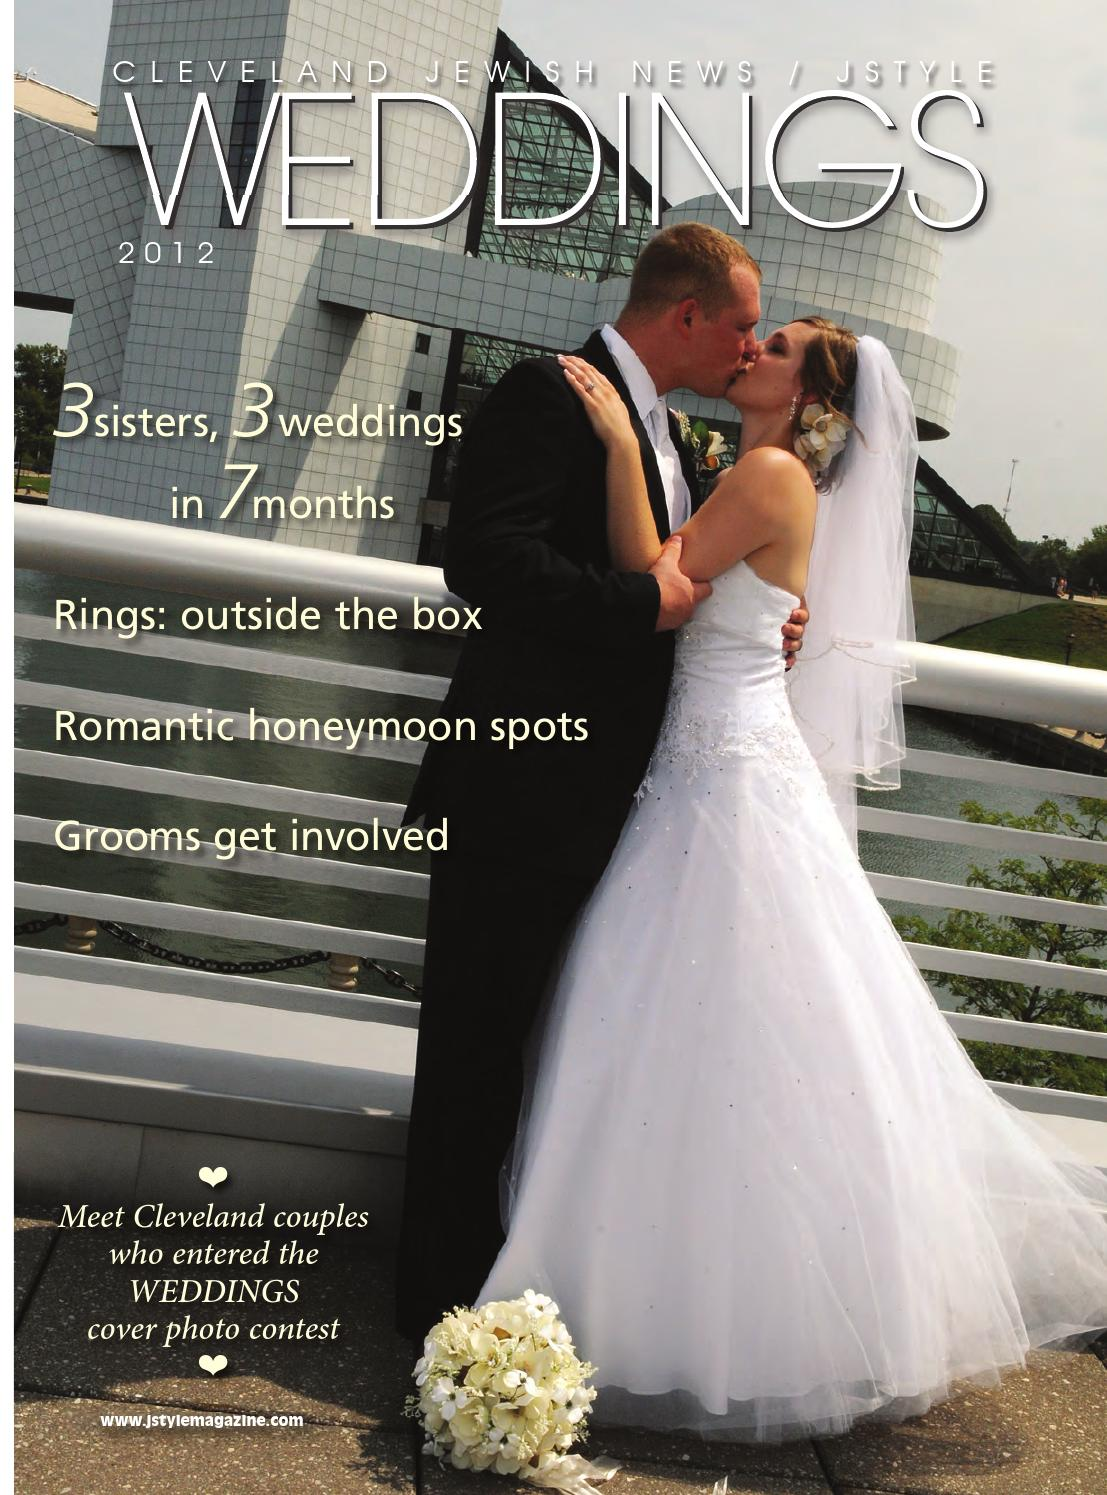 Jstyle Weddings 2012 By Cleveland Jewish Publication Company Issuu